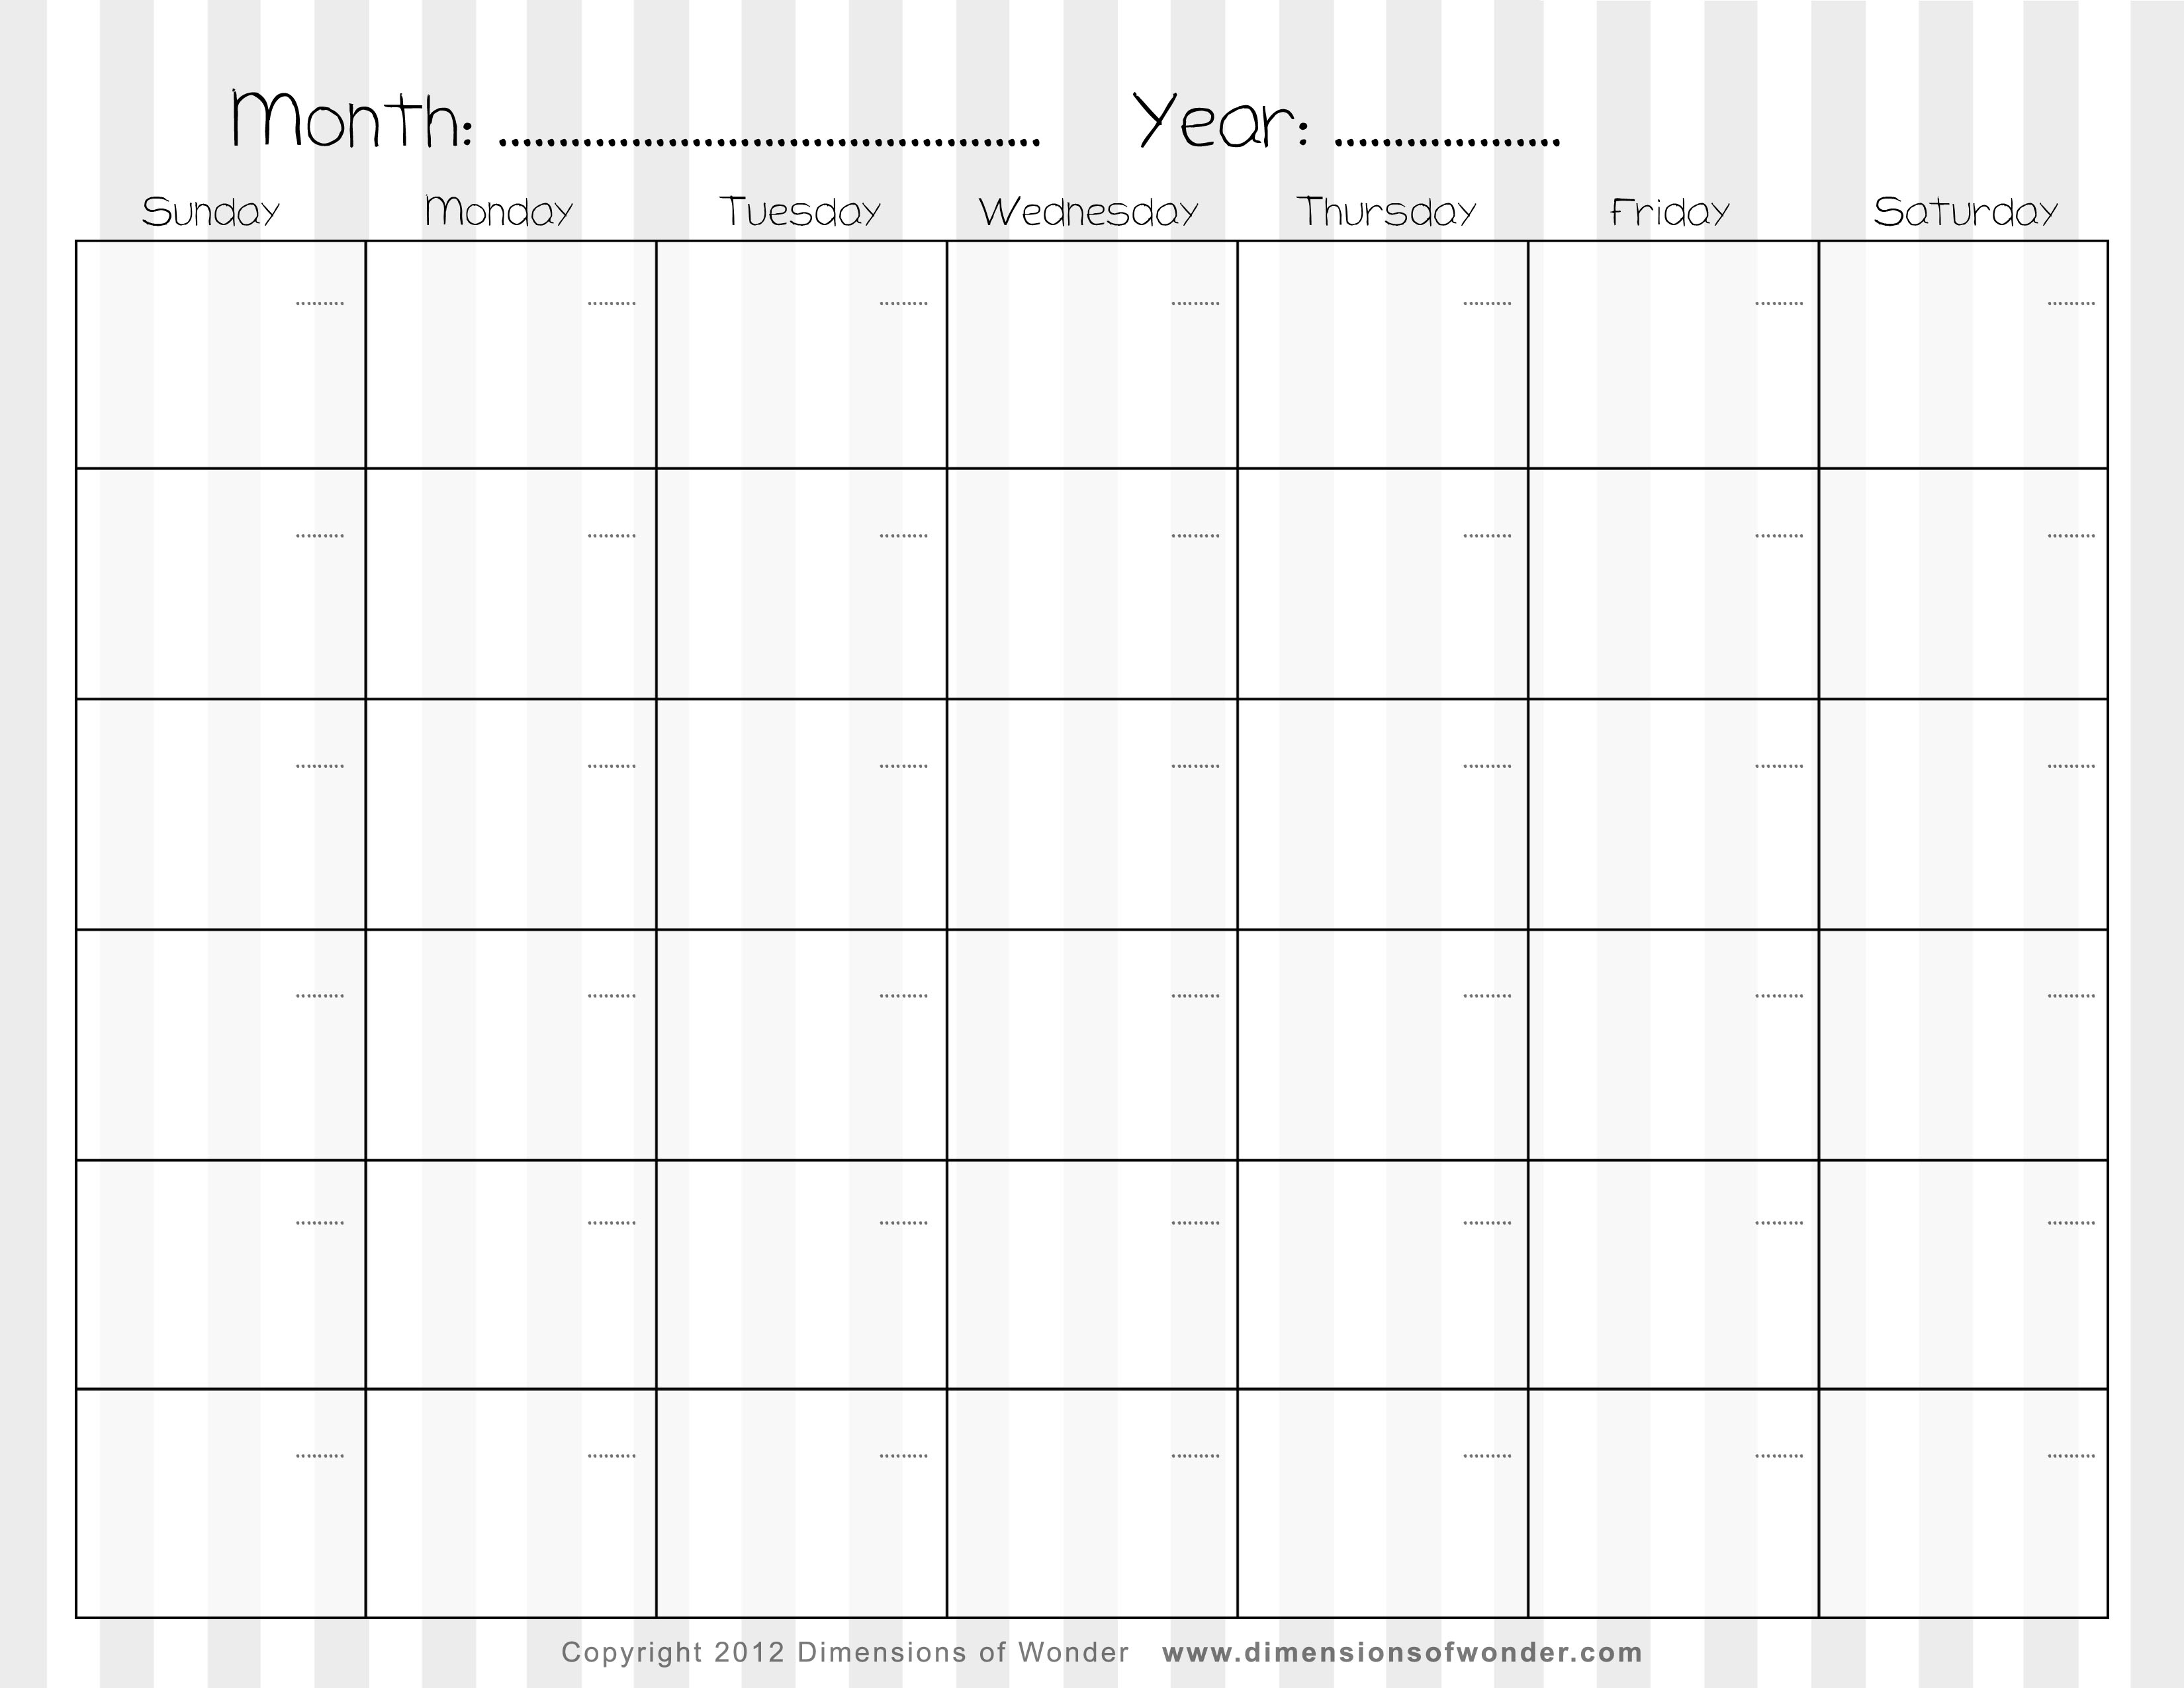 free weekly calendar template Free Printable Monthly Calendar With Lines erdferdf